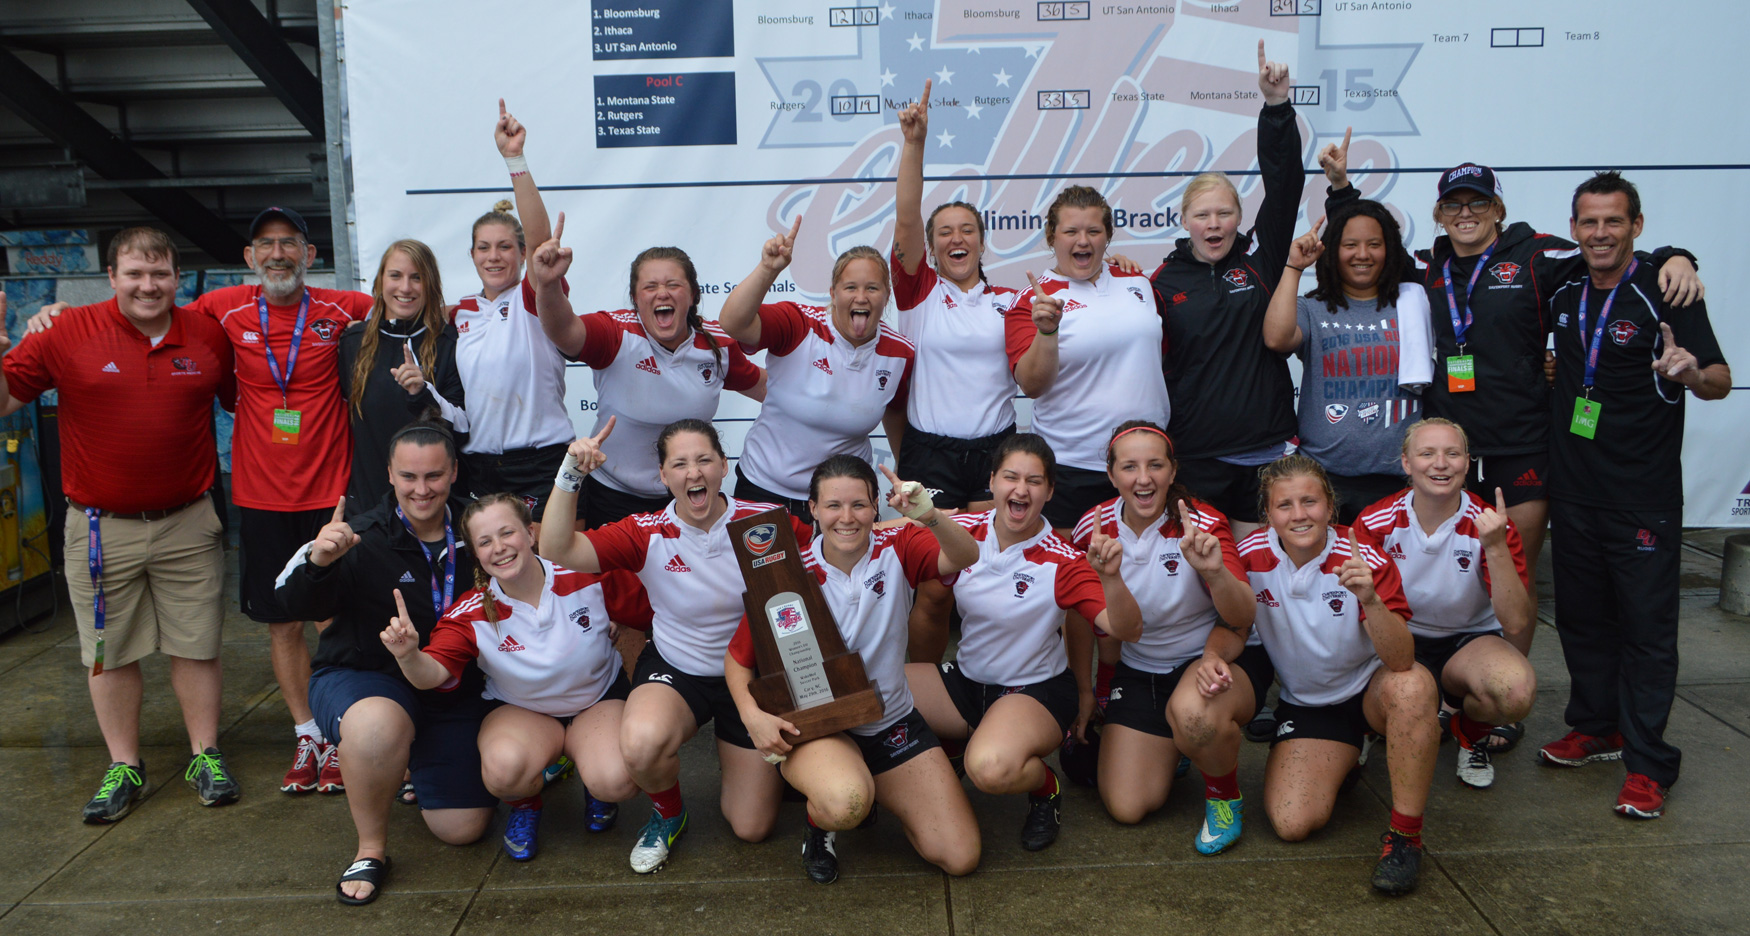 USA College 7s: College 7s 2016: Davenport, Duluth sweep Division II titles